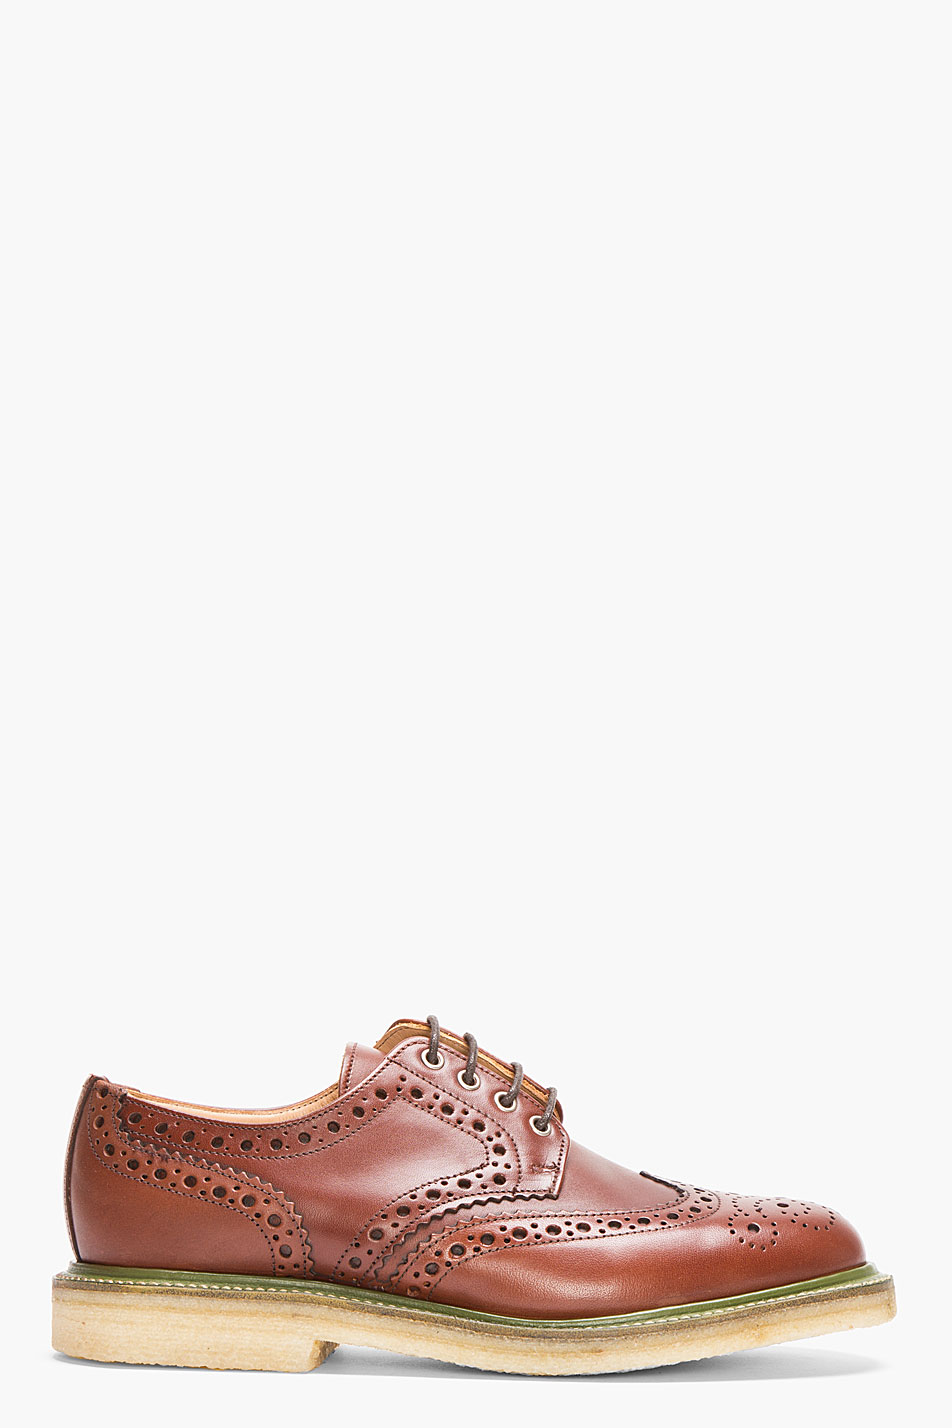 Mark McNairy AW13 Collection 3